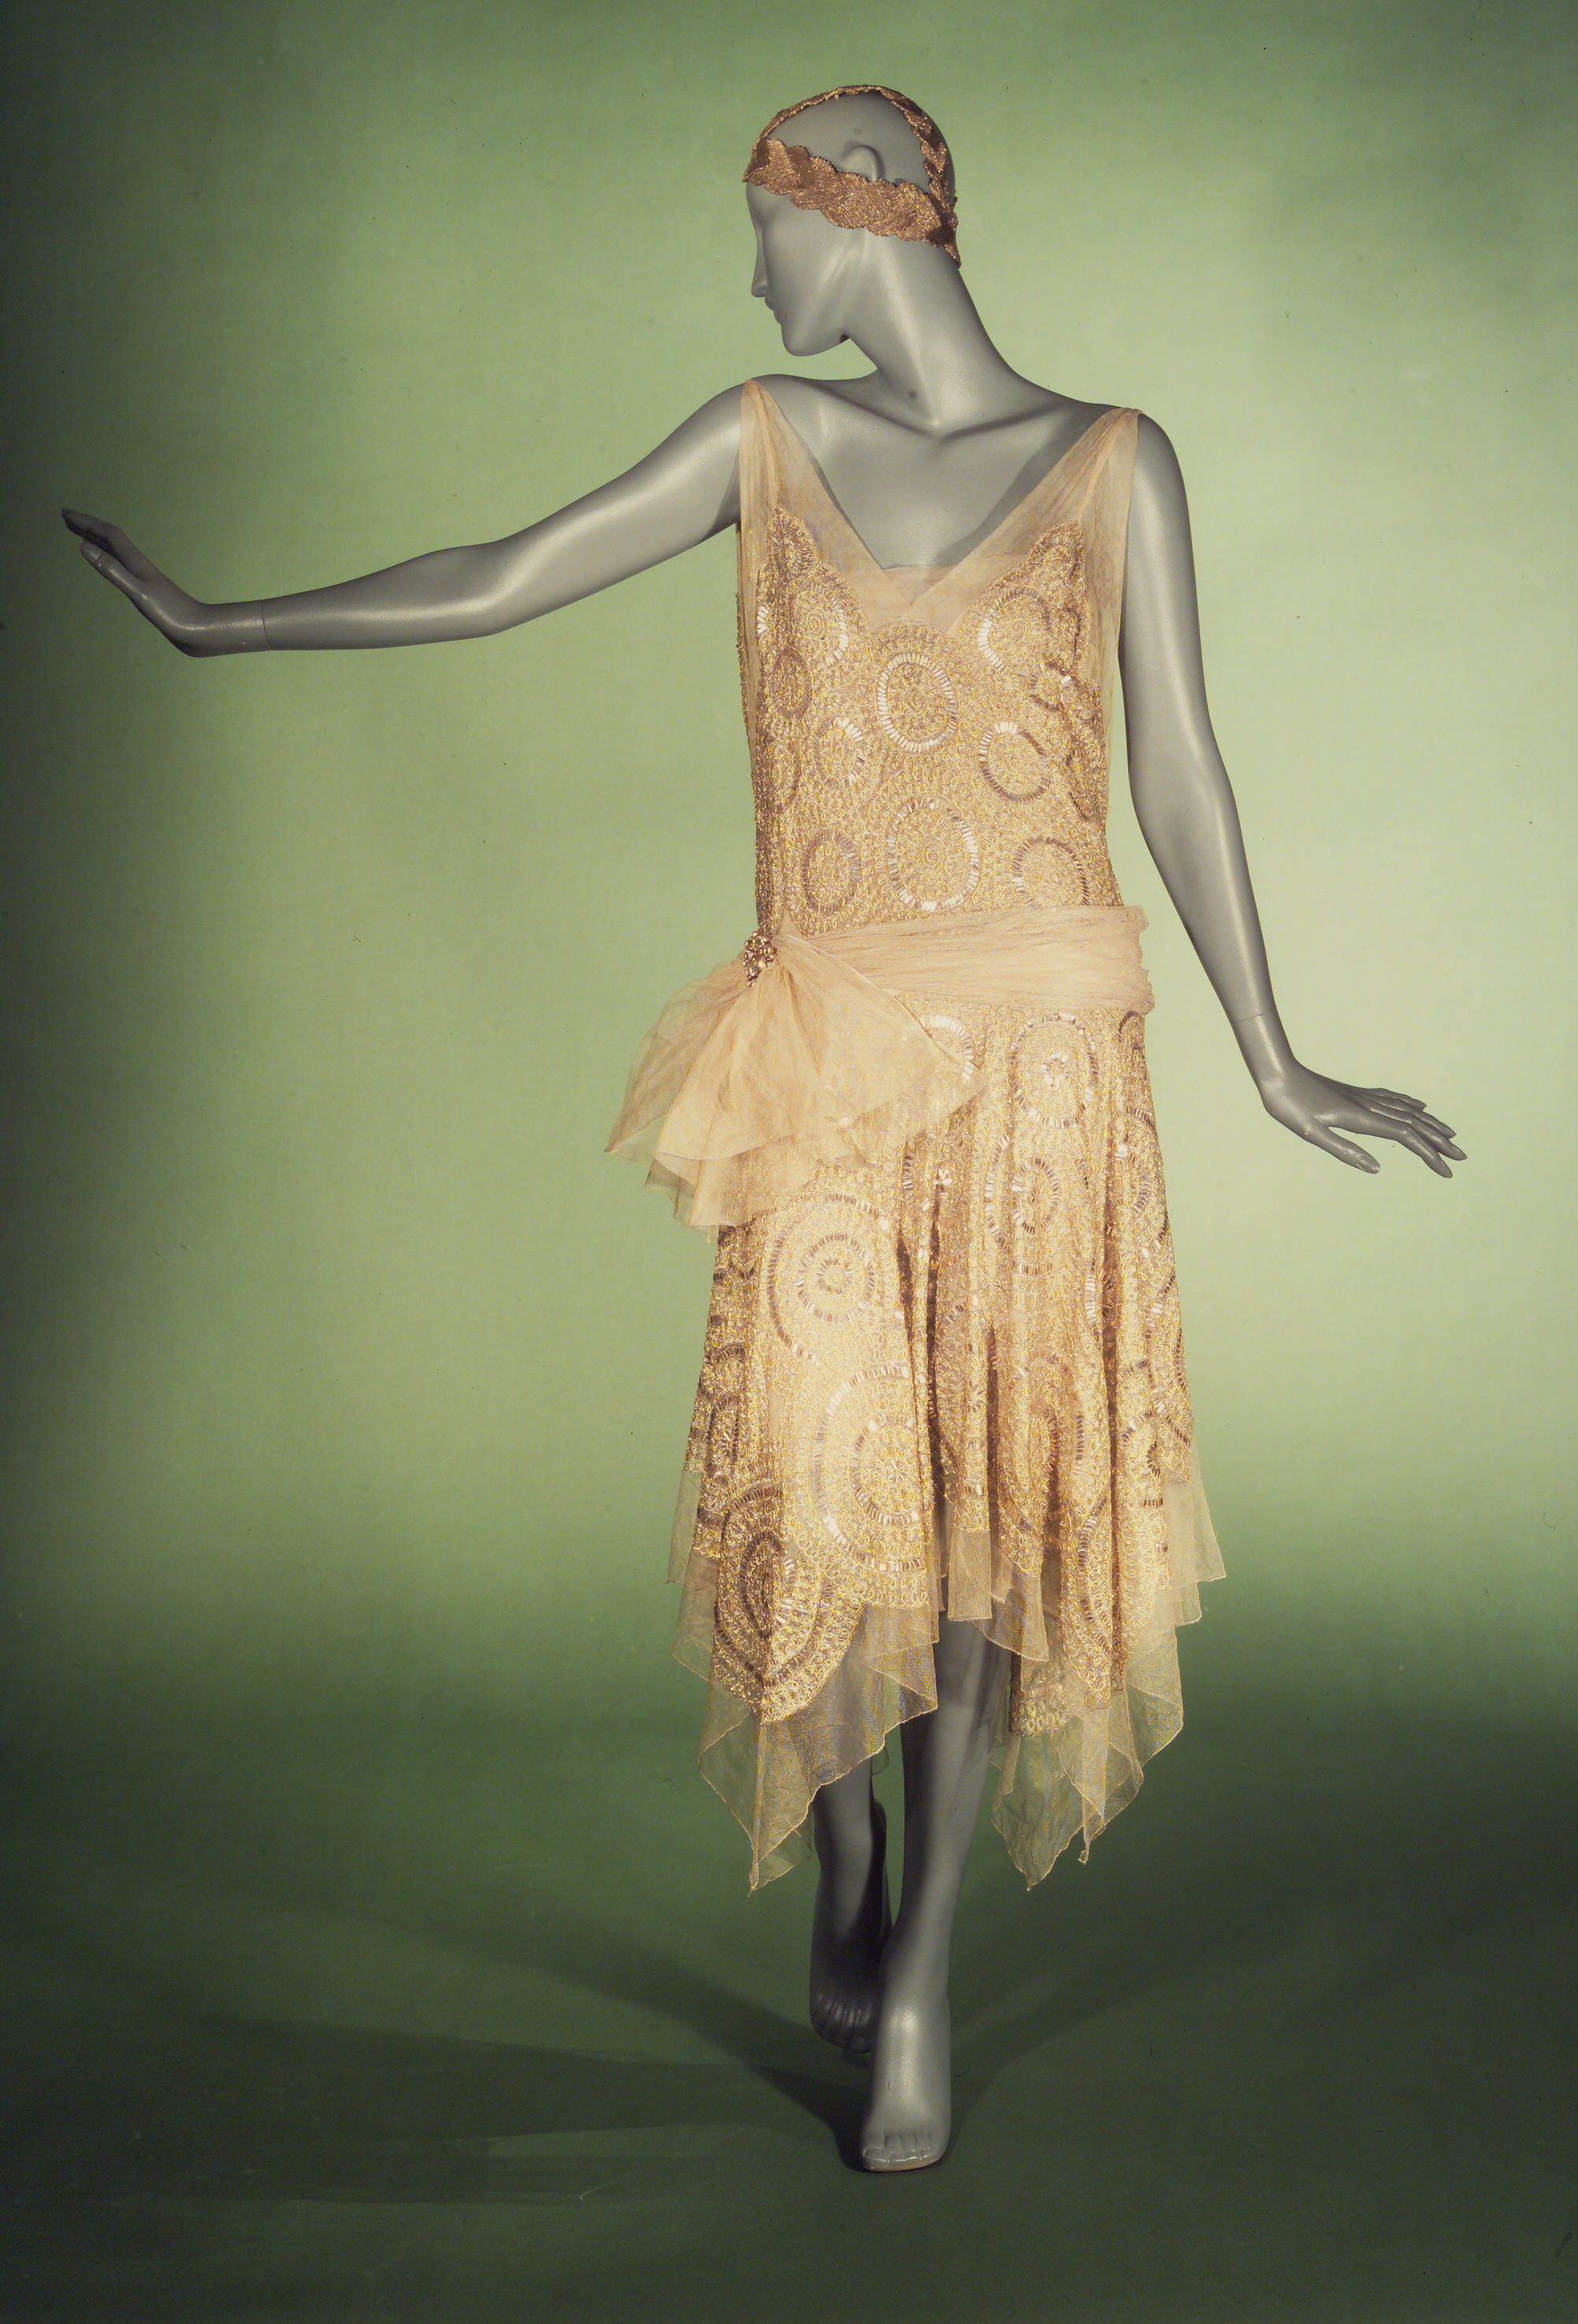 Women S Fashions Of The 1920s Flappers And The Jazz Age Bellatory Fashion And Beauty